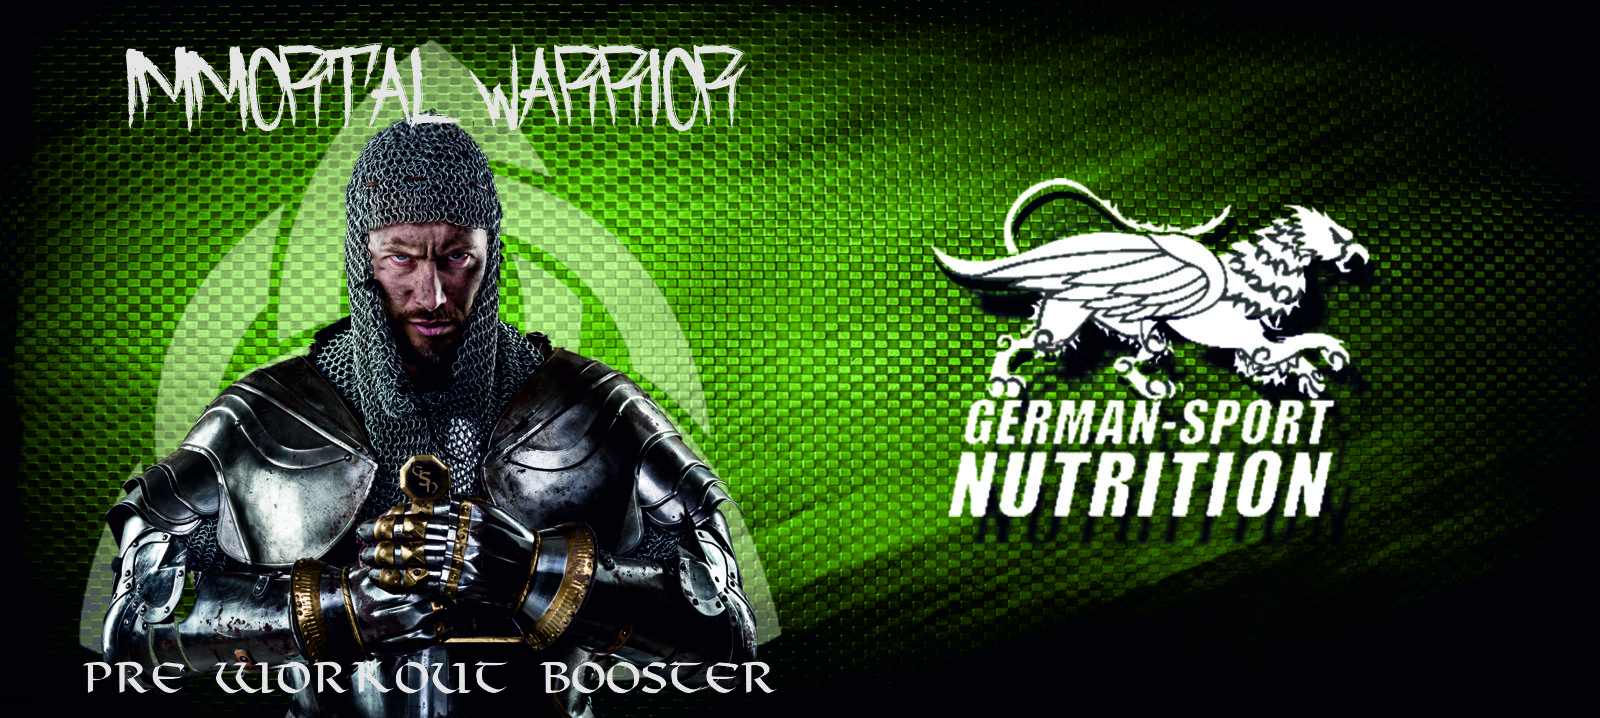 Immortal Warrior Pre Workout Supplement